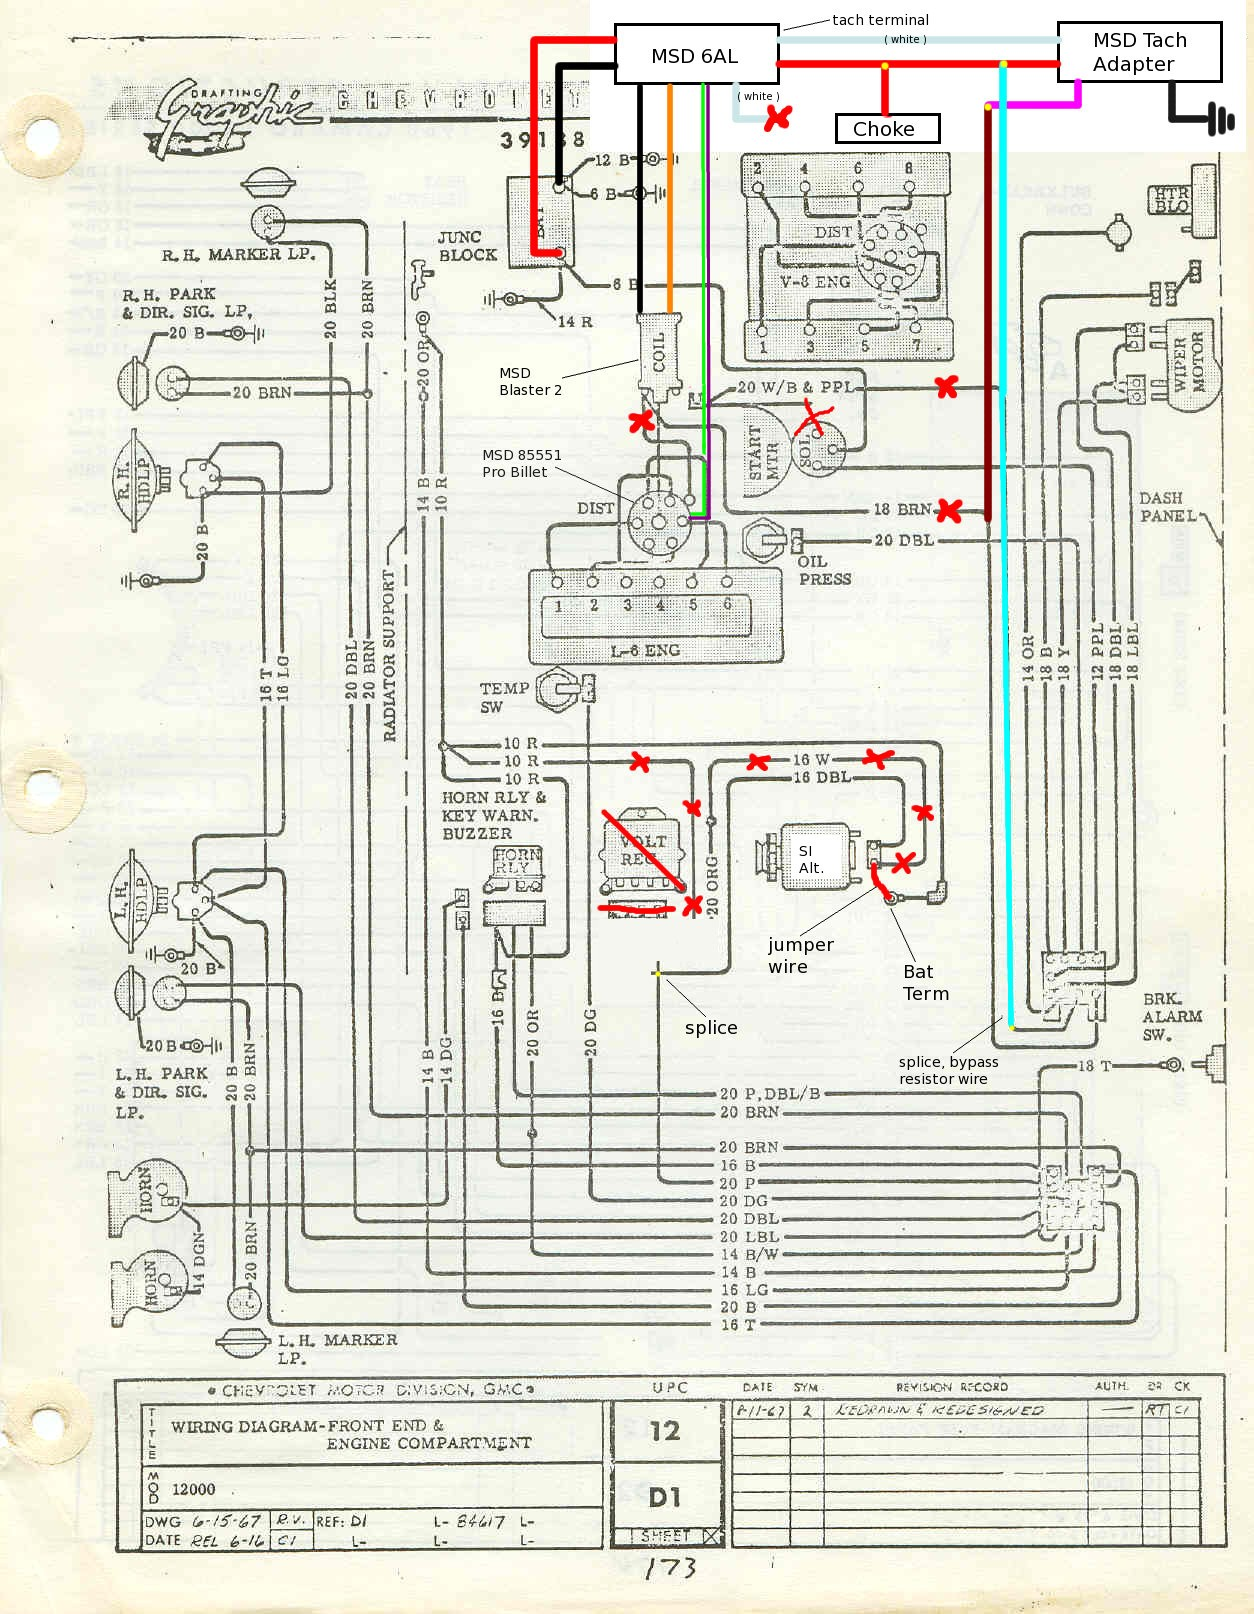 67 Firebird Ignition Wiring Diagram | Wiring Liry